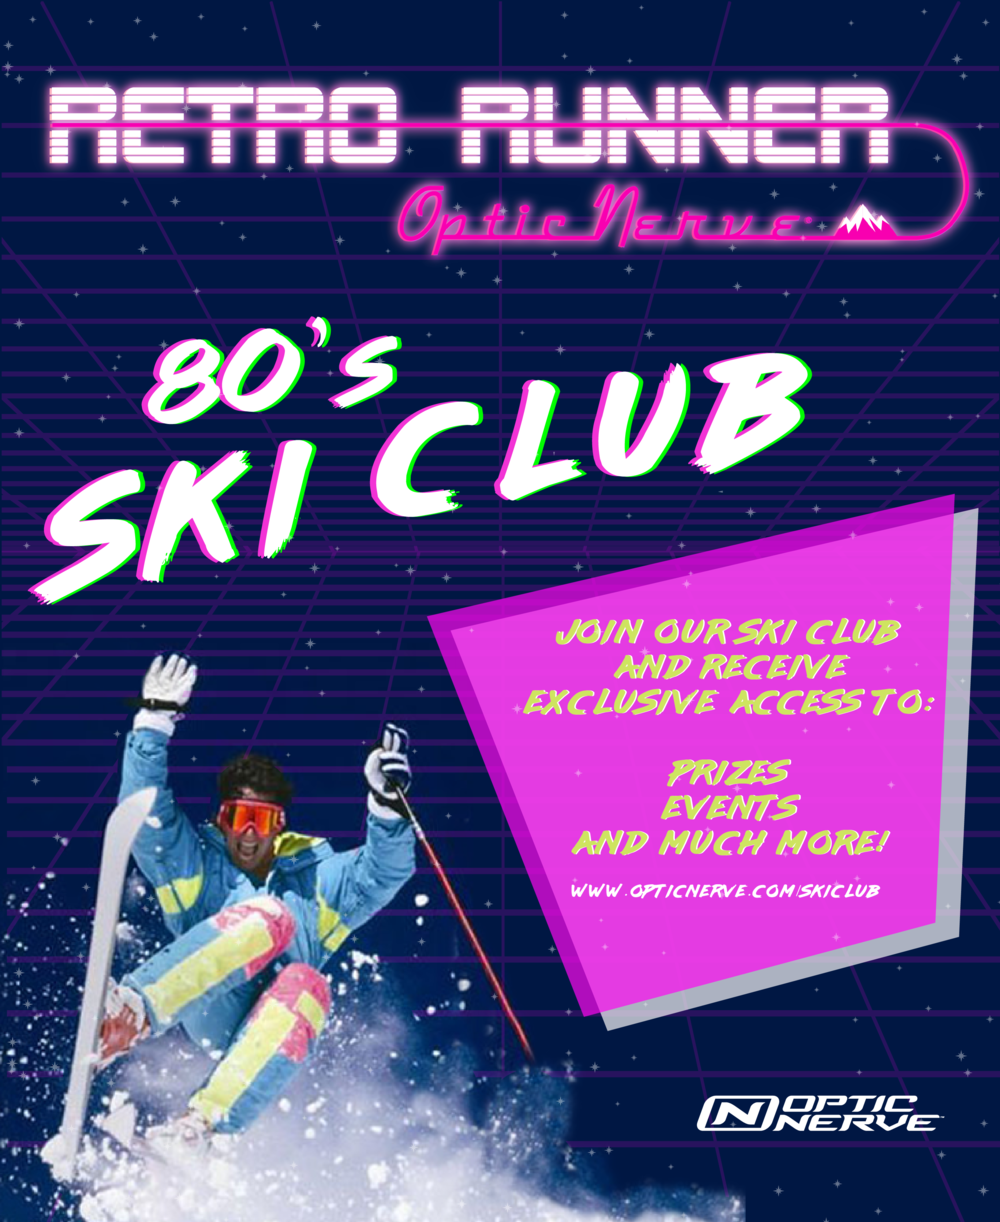 ON_Ski_Club_Poster-01.png